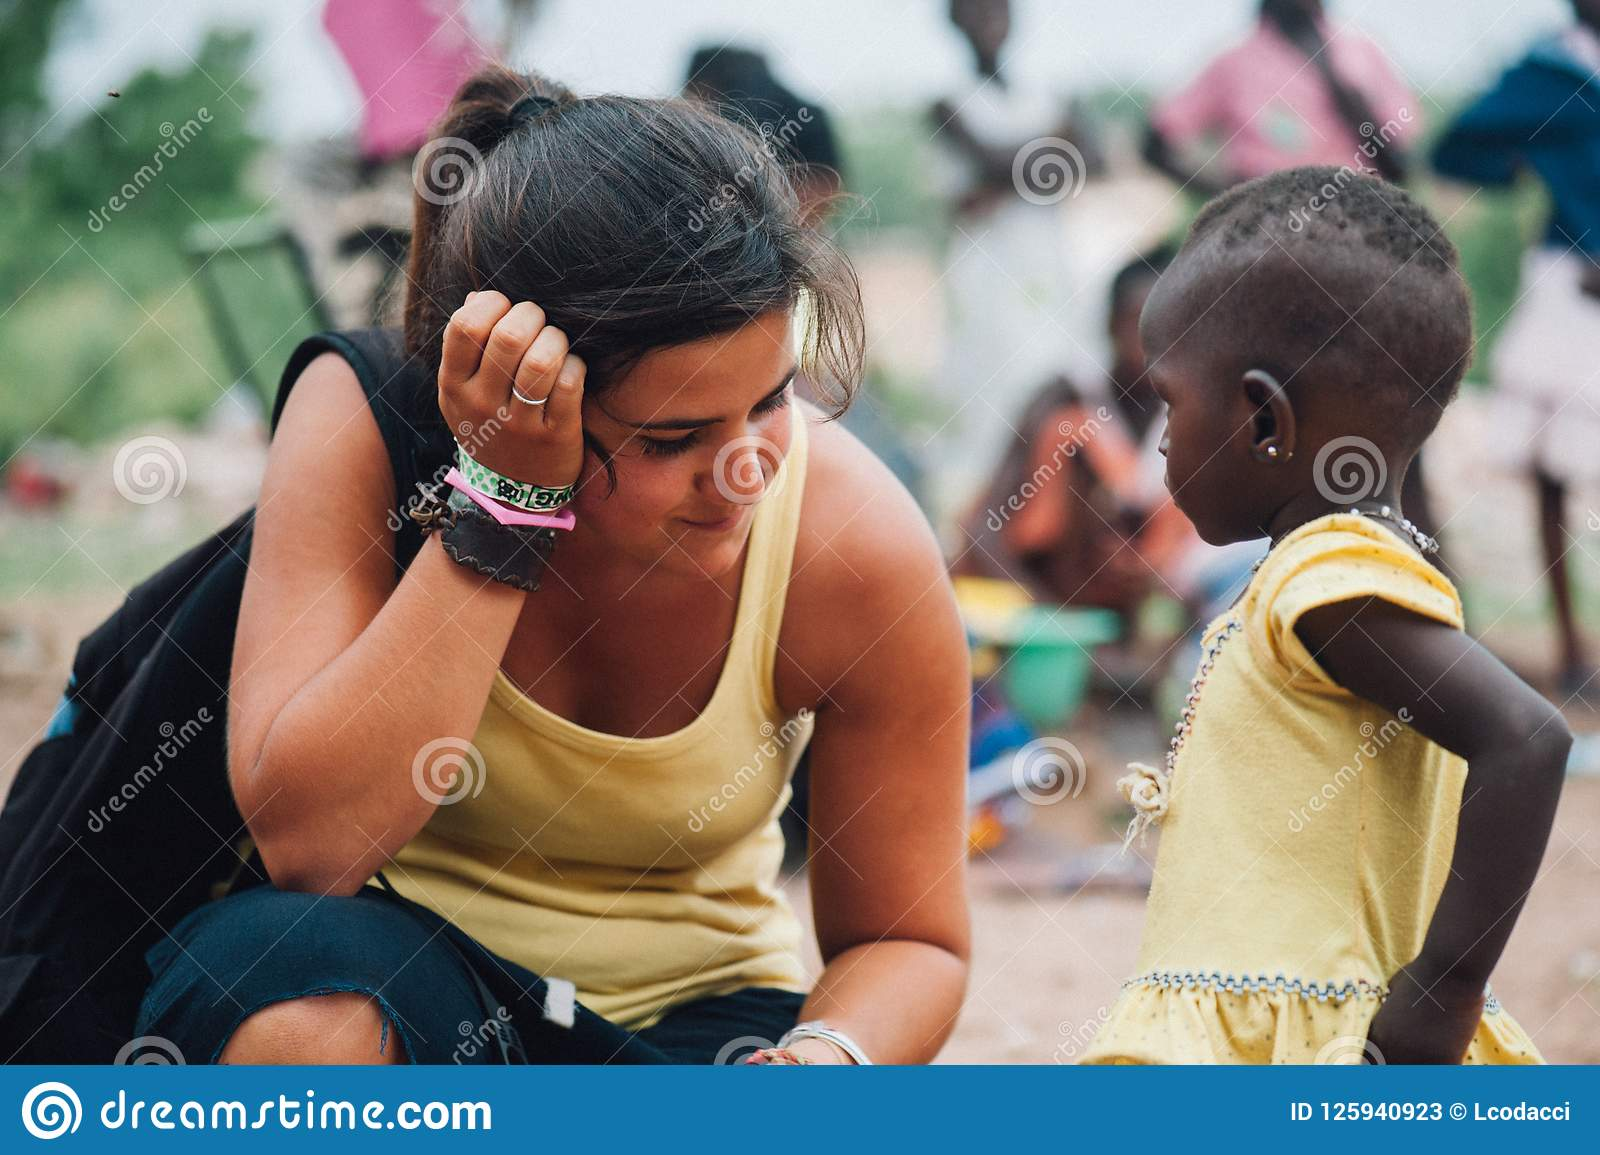 White Caucasian Young Woman Plays With Black African People In A Rural Village Editorial Stock Photo Image Of African Outside 125940923